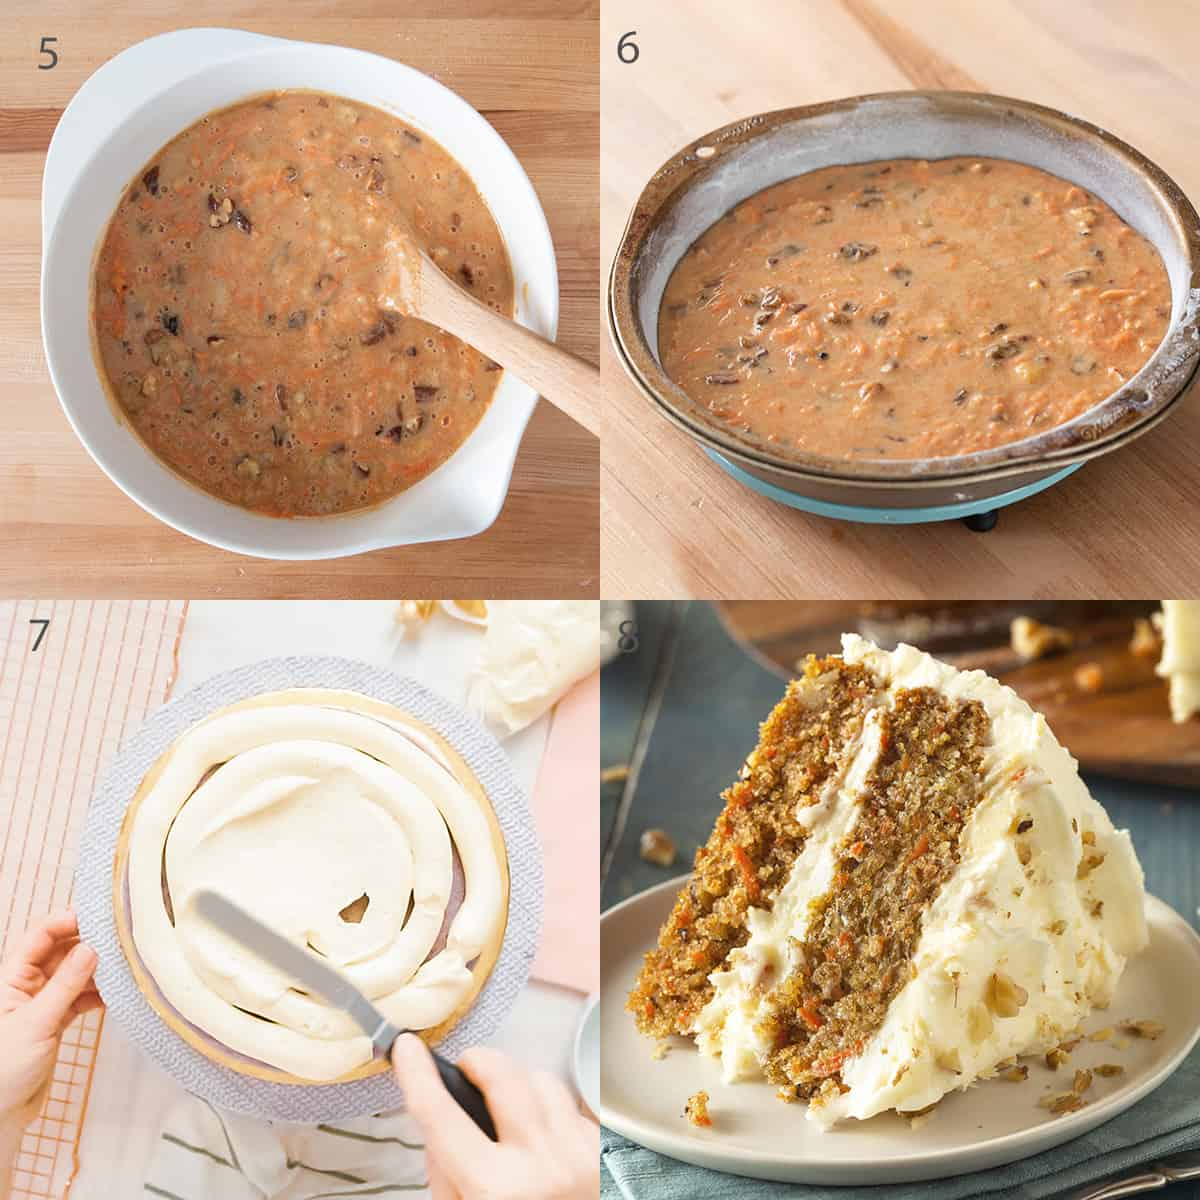 Carrot cake recipe step by step instructions.